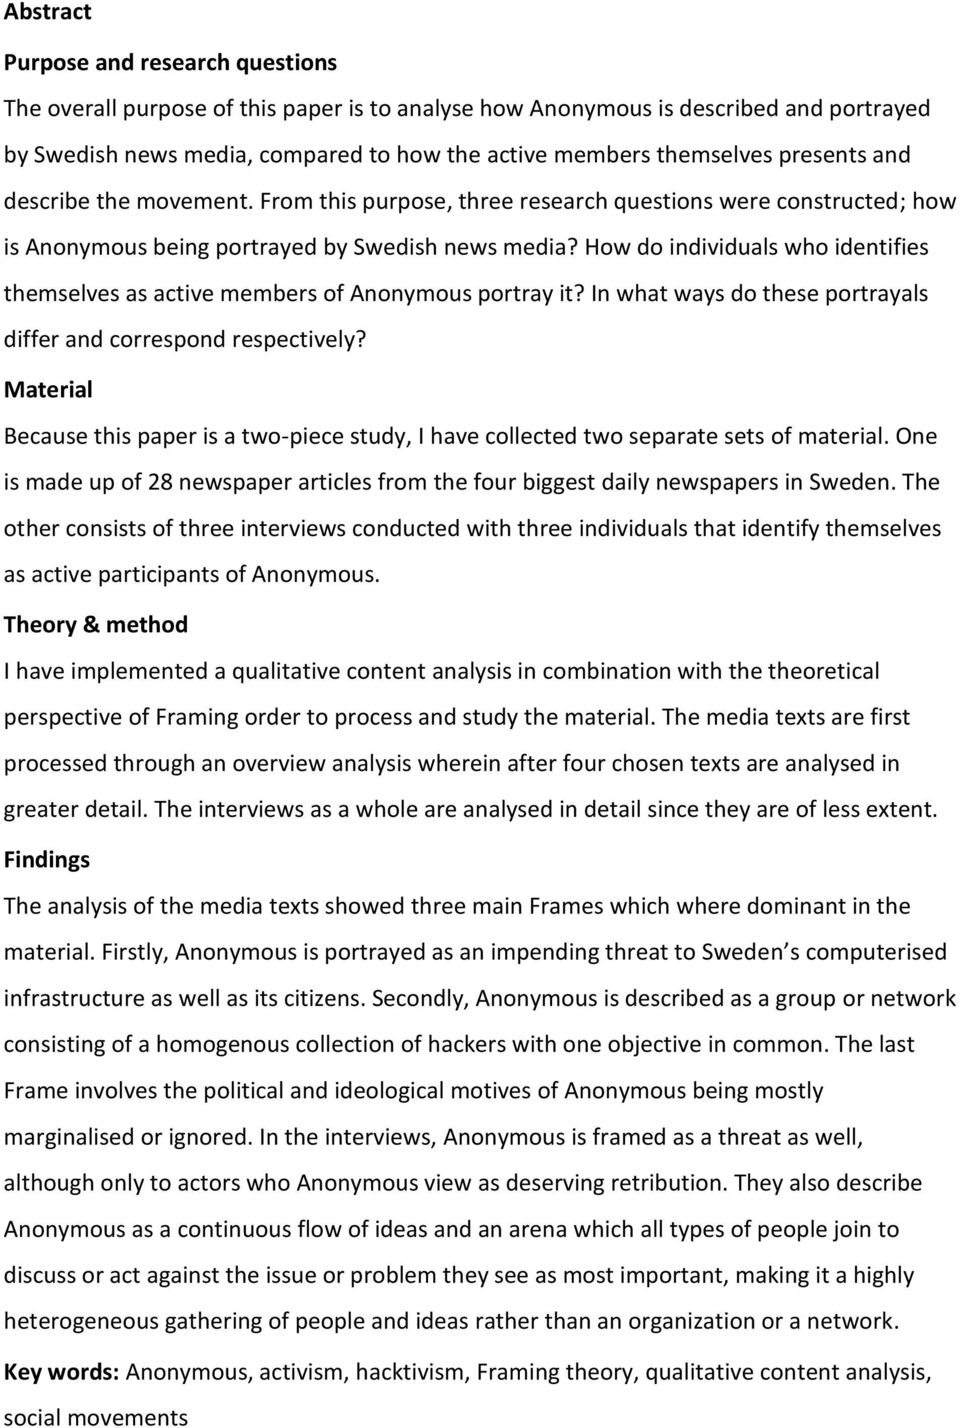 How do individuals who identifies themselves as active members of Anonymous portray it? In what ways do these portrayals differ and correspond respectively?